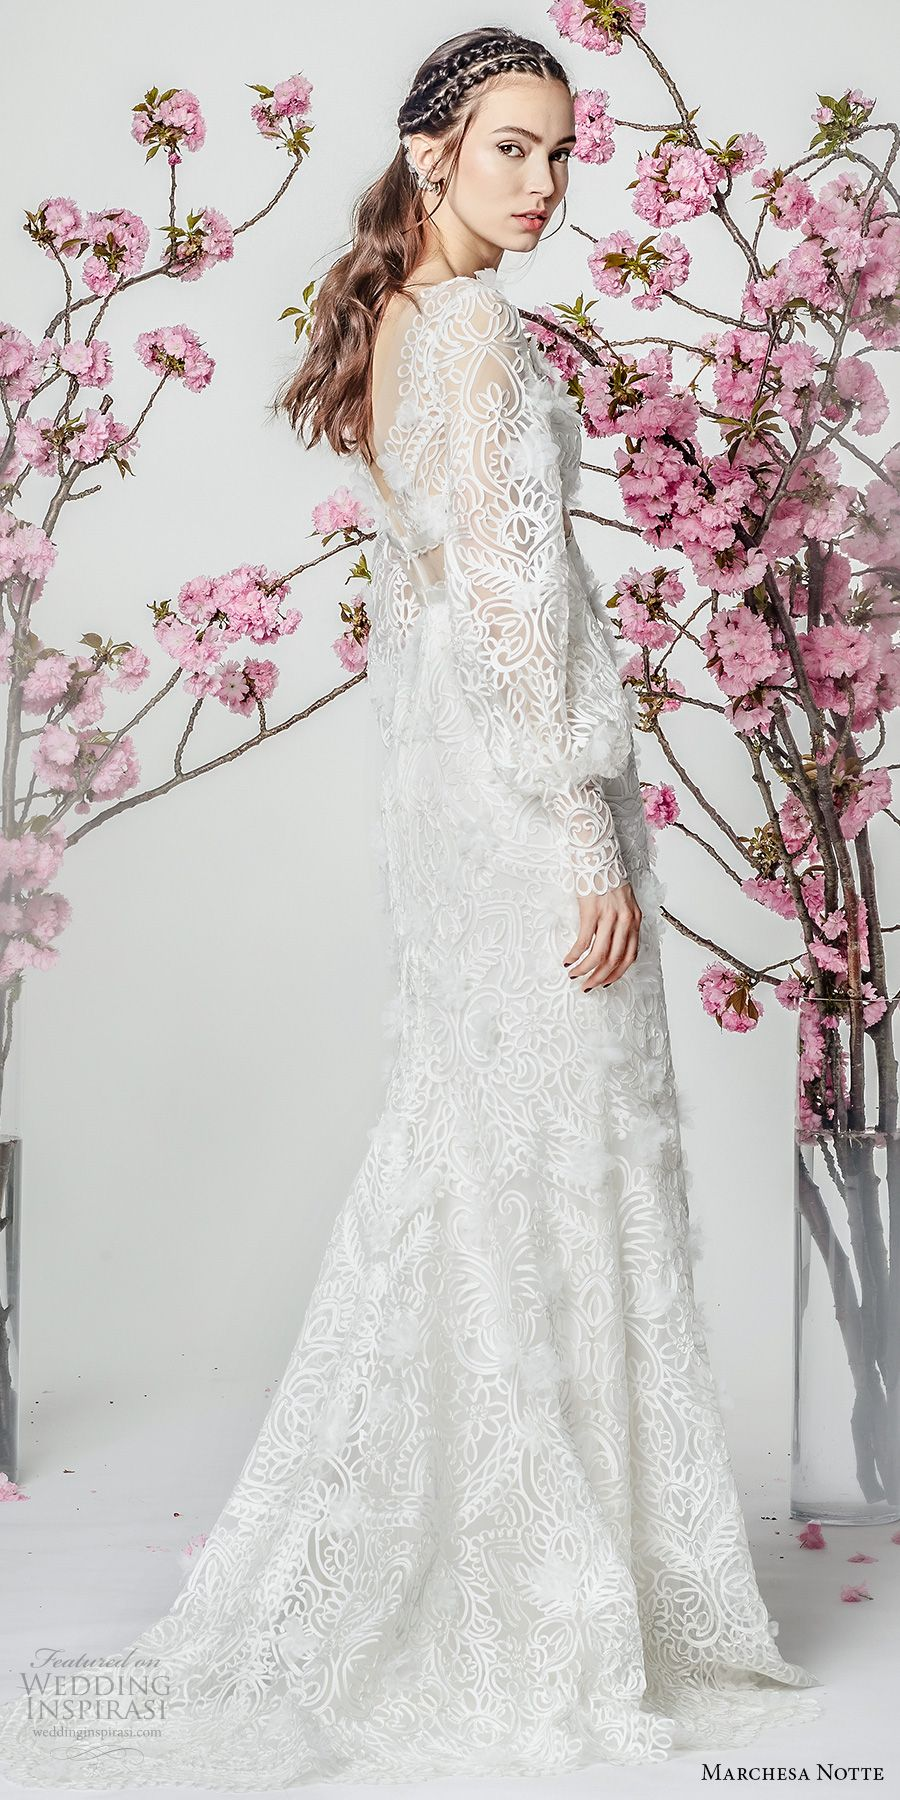 Marchesa notte spring wedding dresses fit and flare